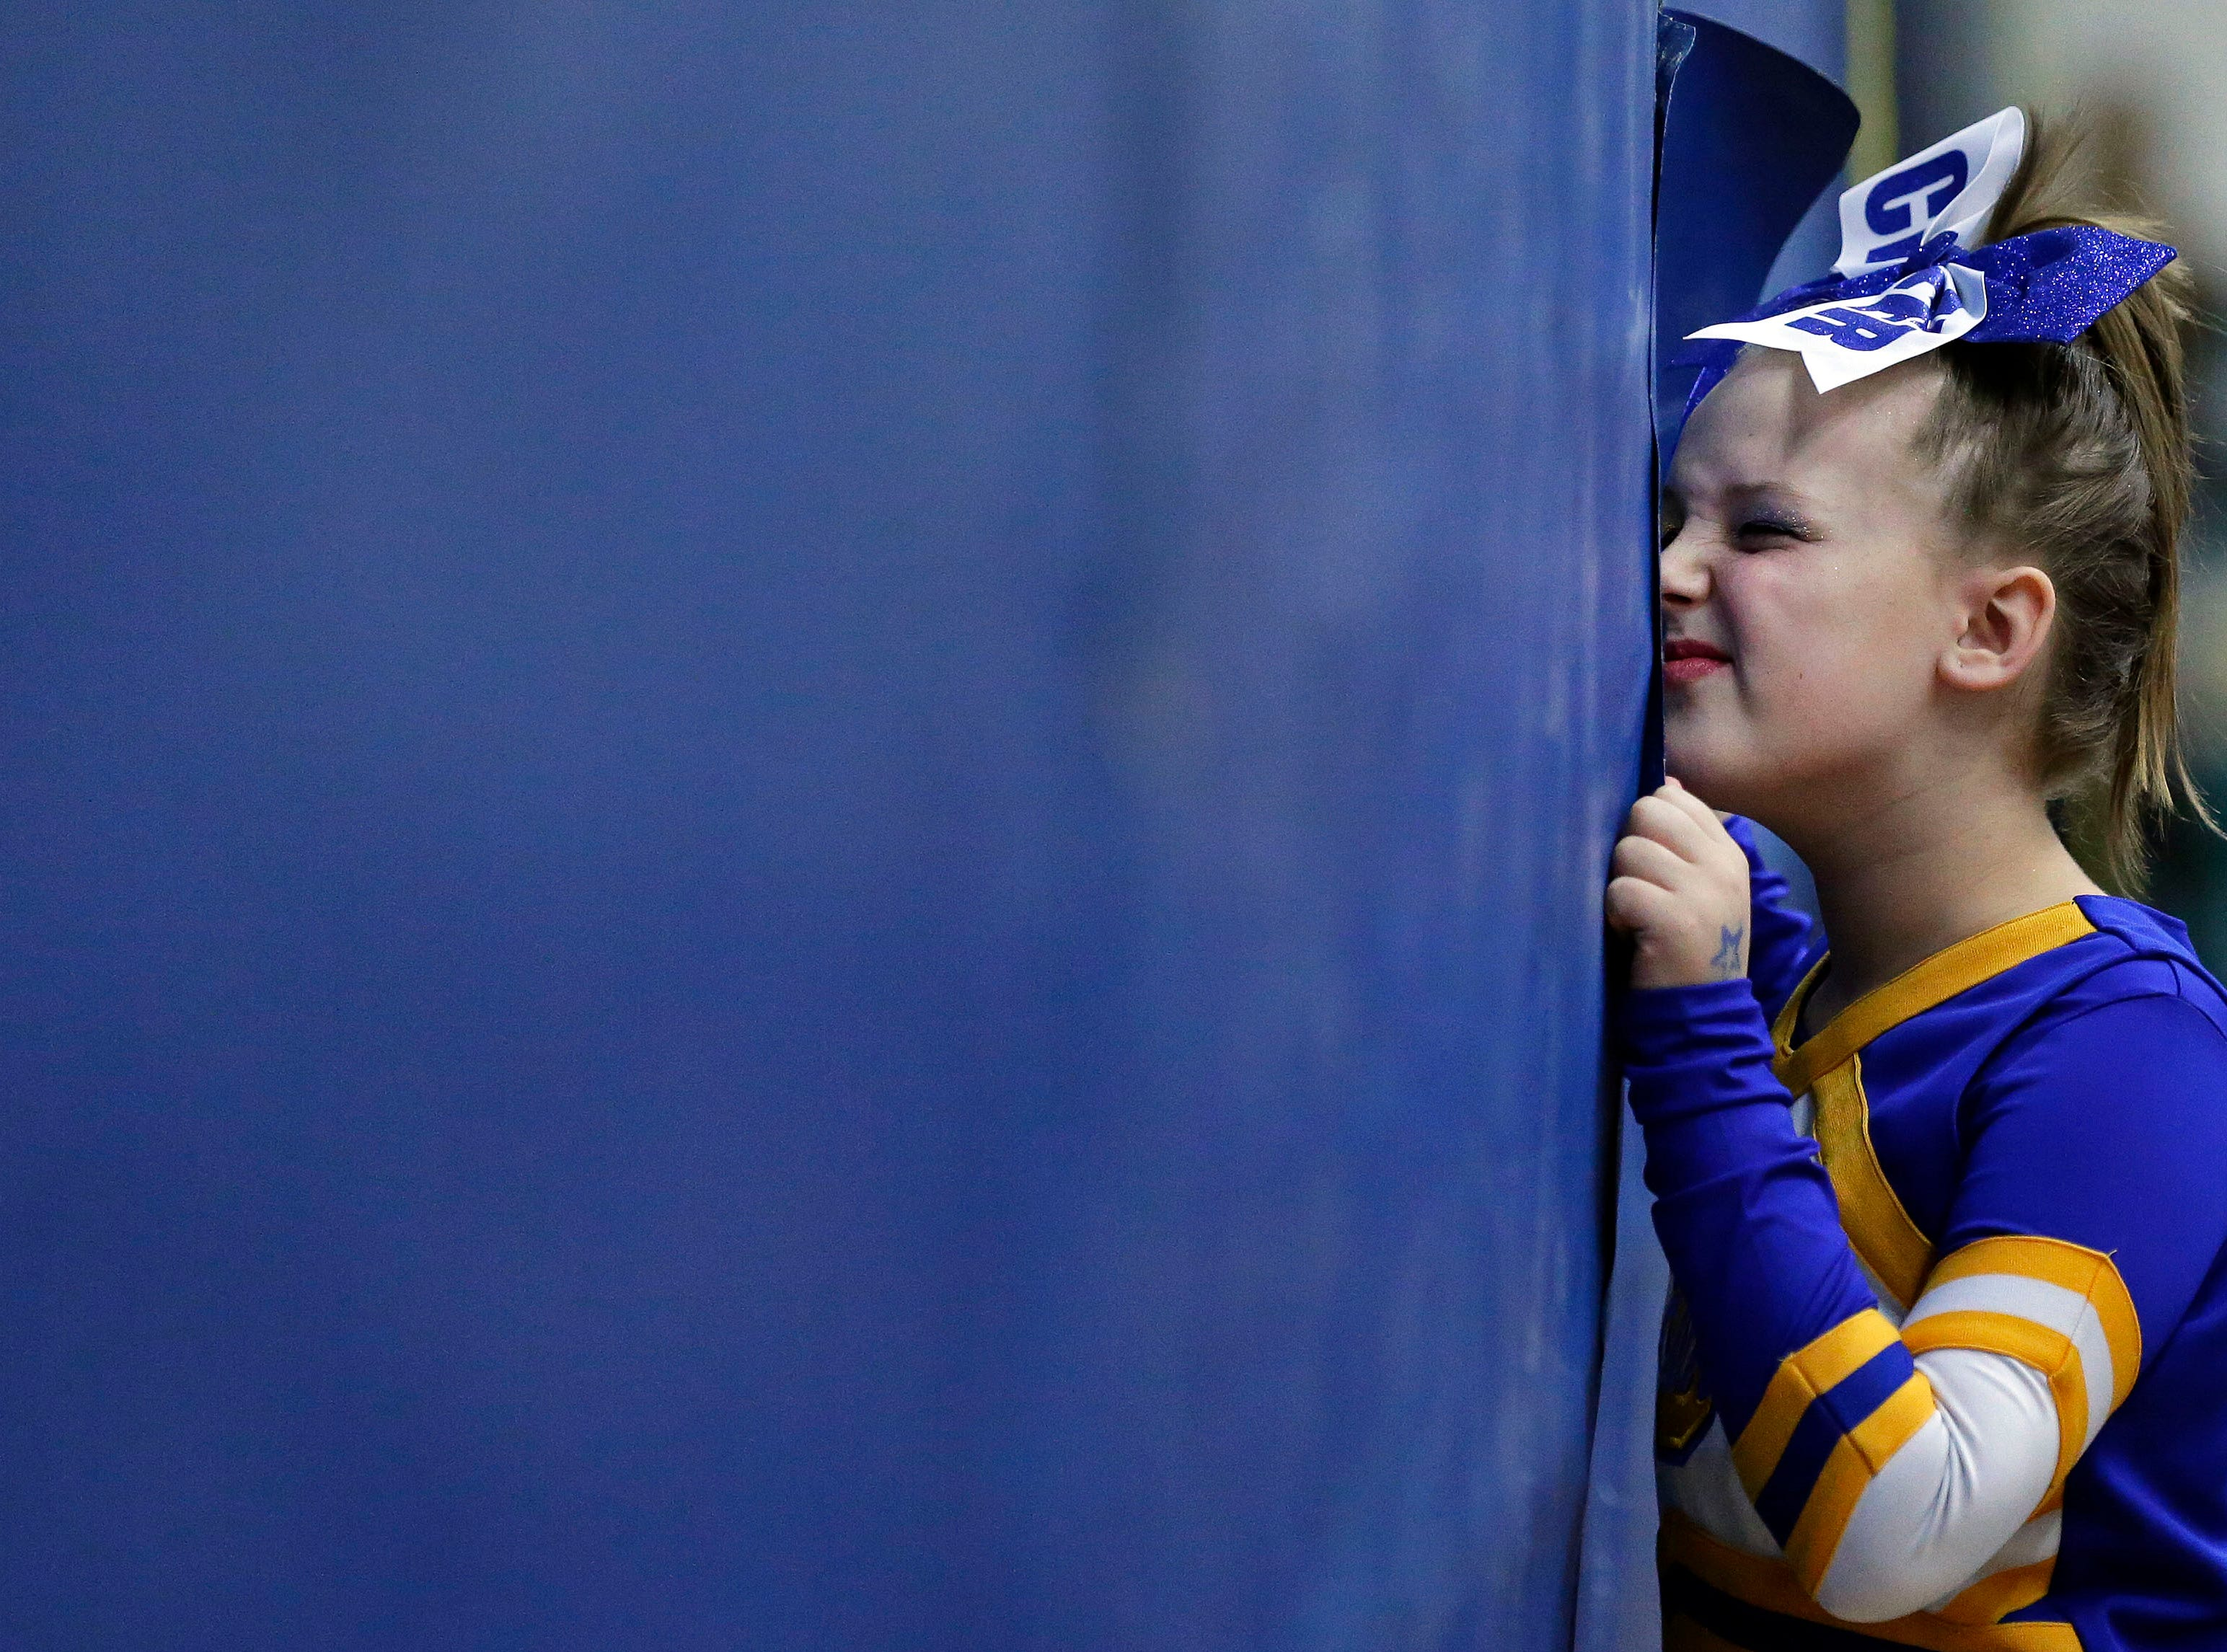 An Oconto Falls team member watches the competition as her team waits to warm-up as the Lightning Bolt Explosion Cheer and Dance competition takes place Saturday, January 5, 2019, at Appleton North High School in Appleton, Wis.